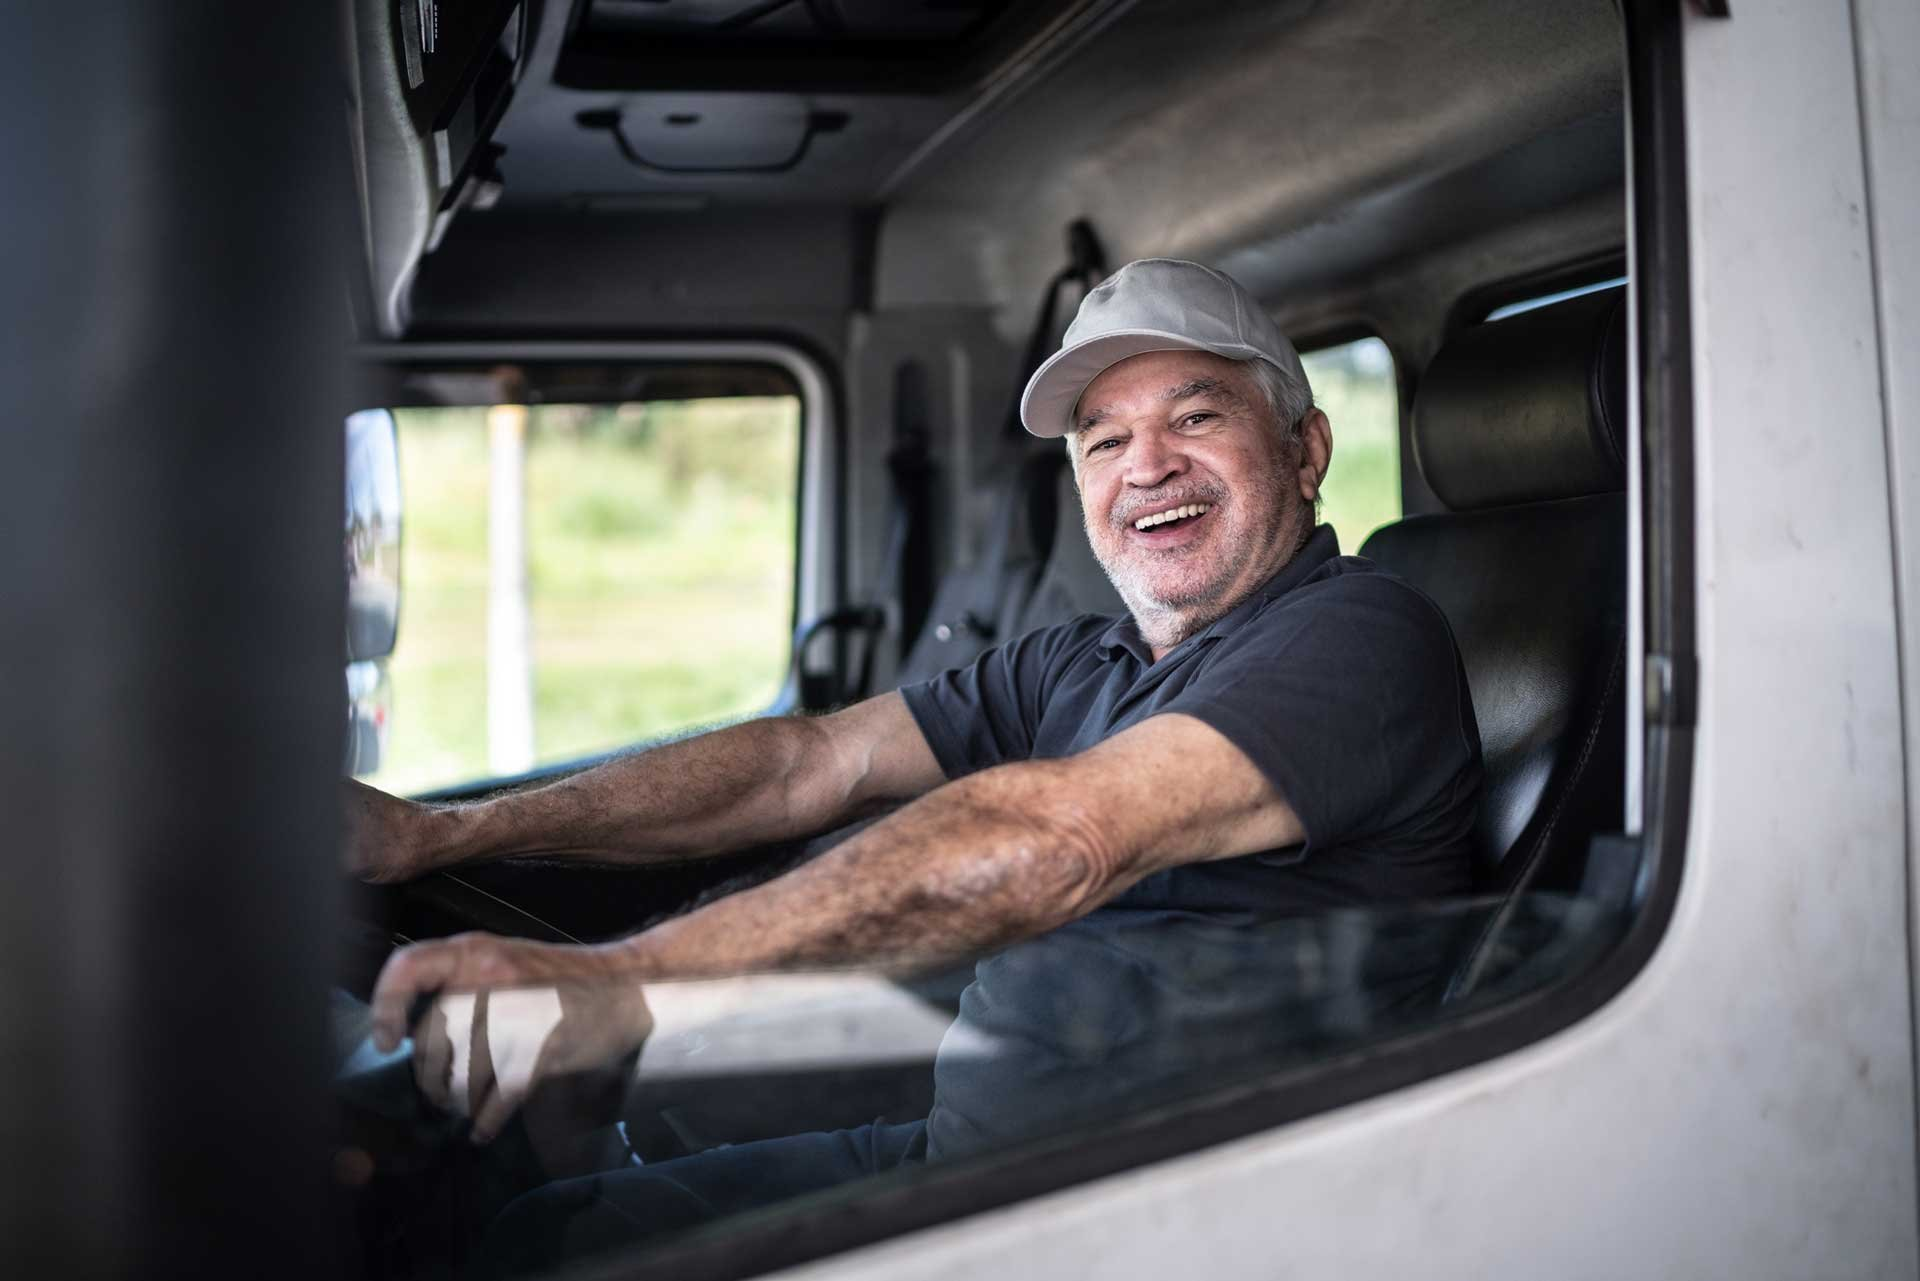 Man in truck smiling